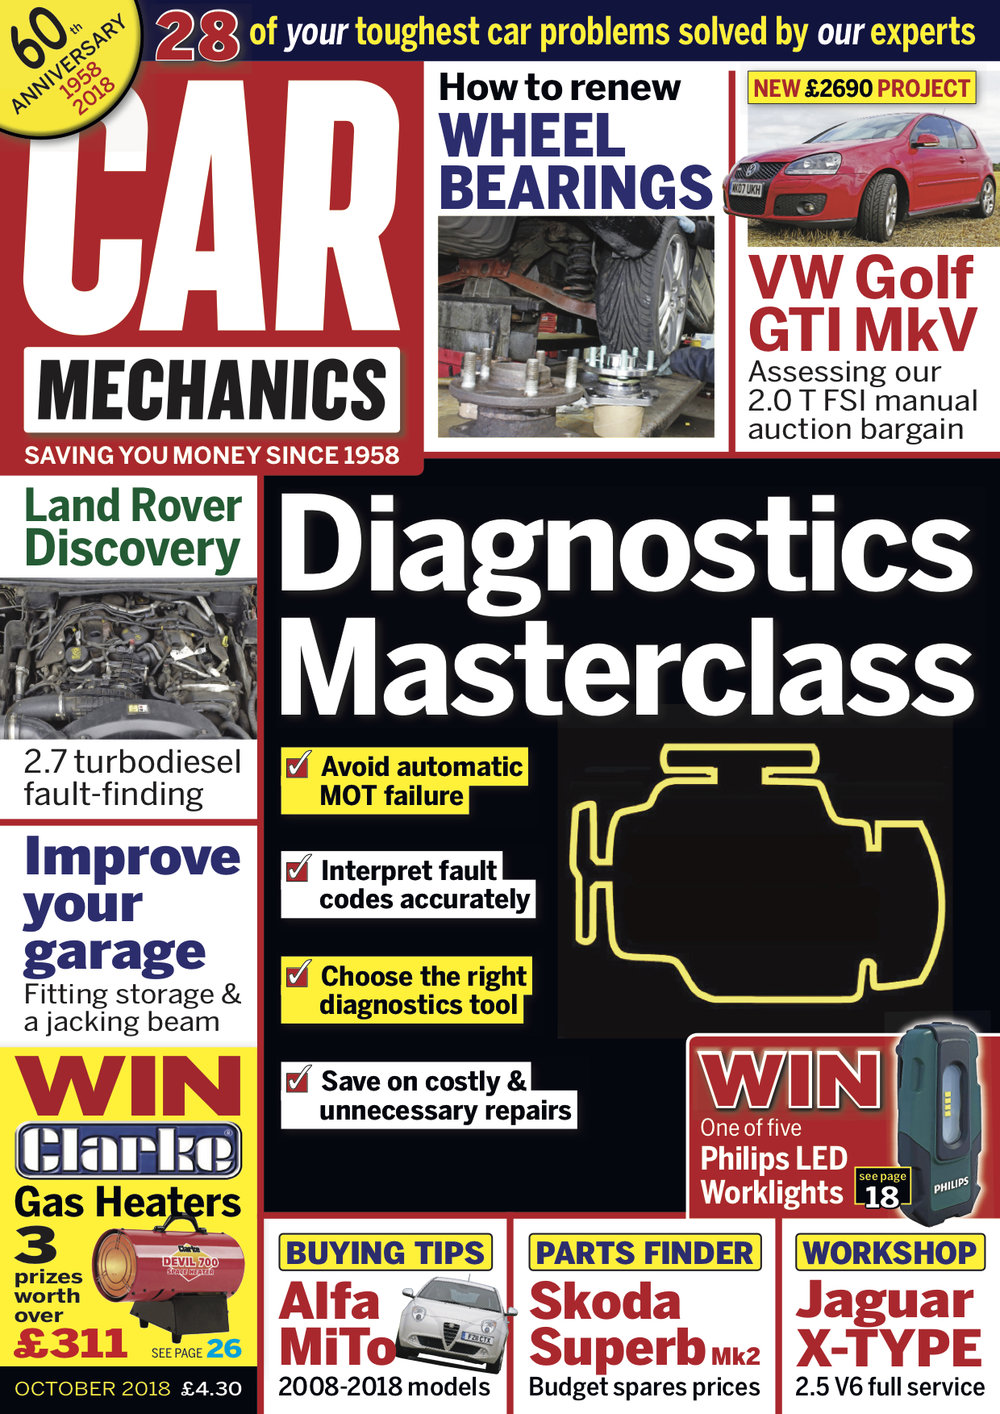 October 2018 Car Mechanics For Electronic Ignition Wiring Diagram Ih Diagnostics Masterclass Learn The Skill Of Reading And Interpreting Vehicle Electronics Systems How Technology Has Evolved Over Time